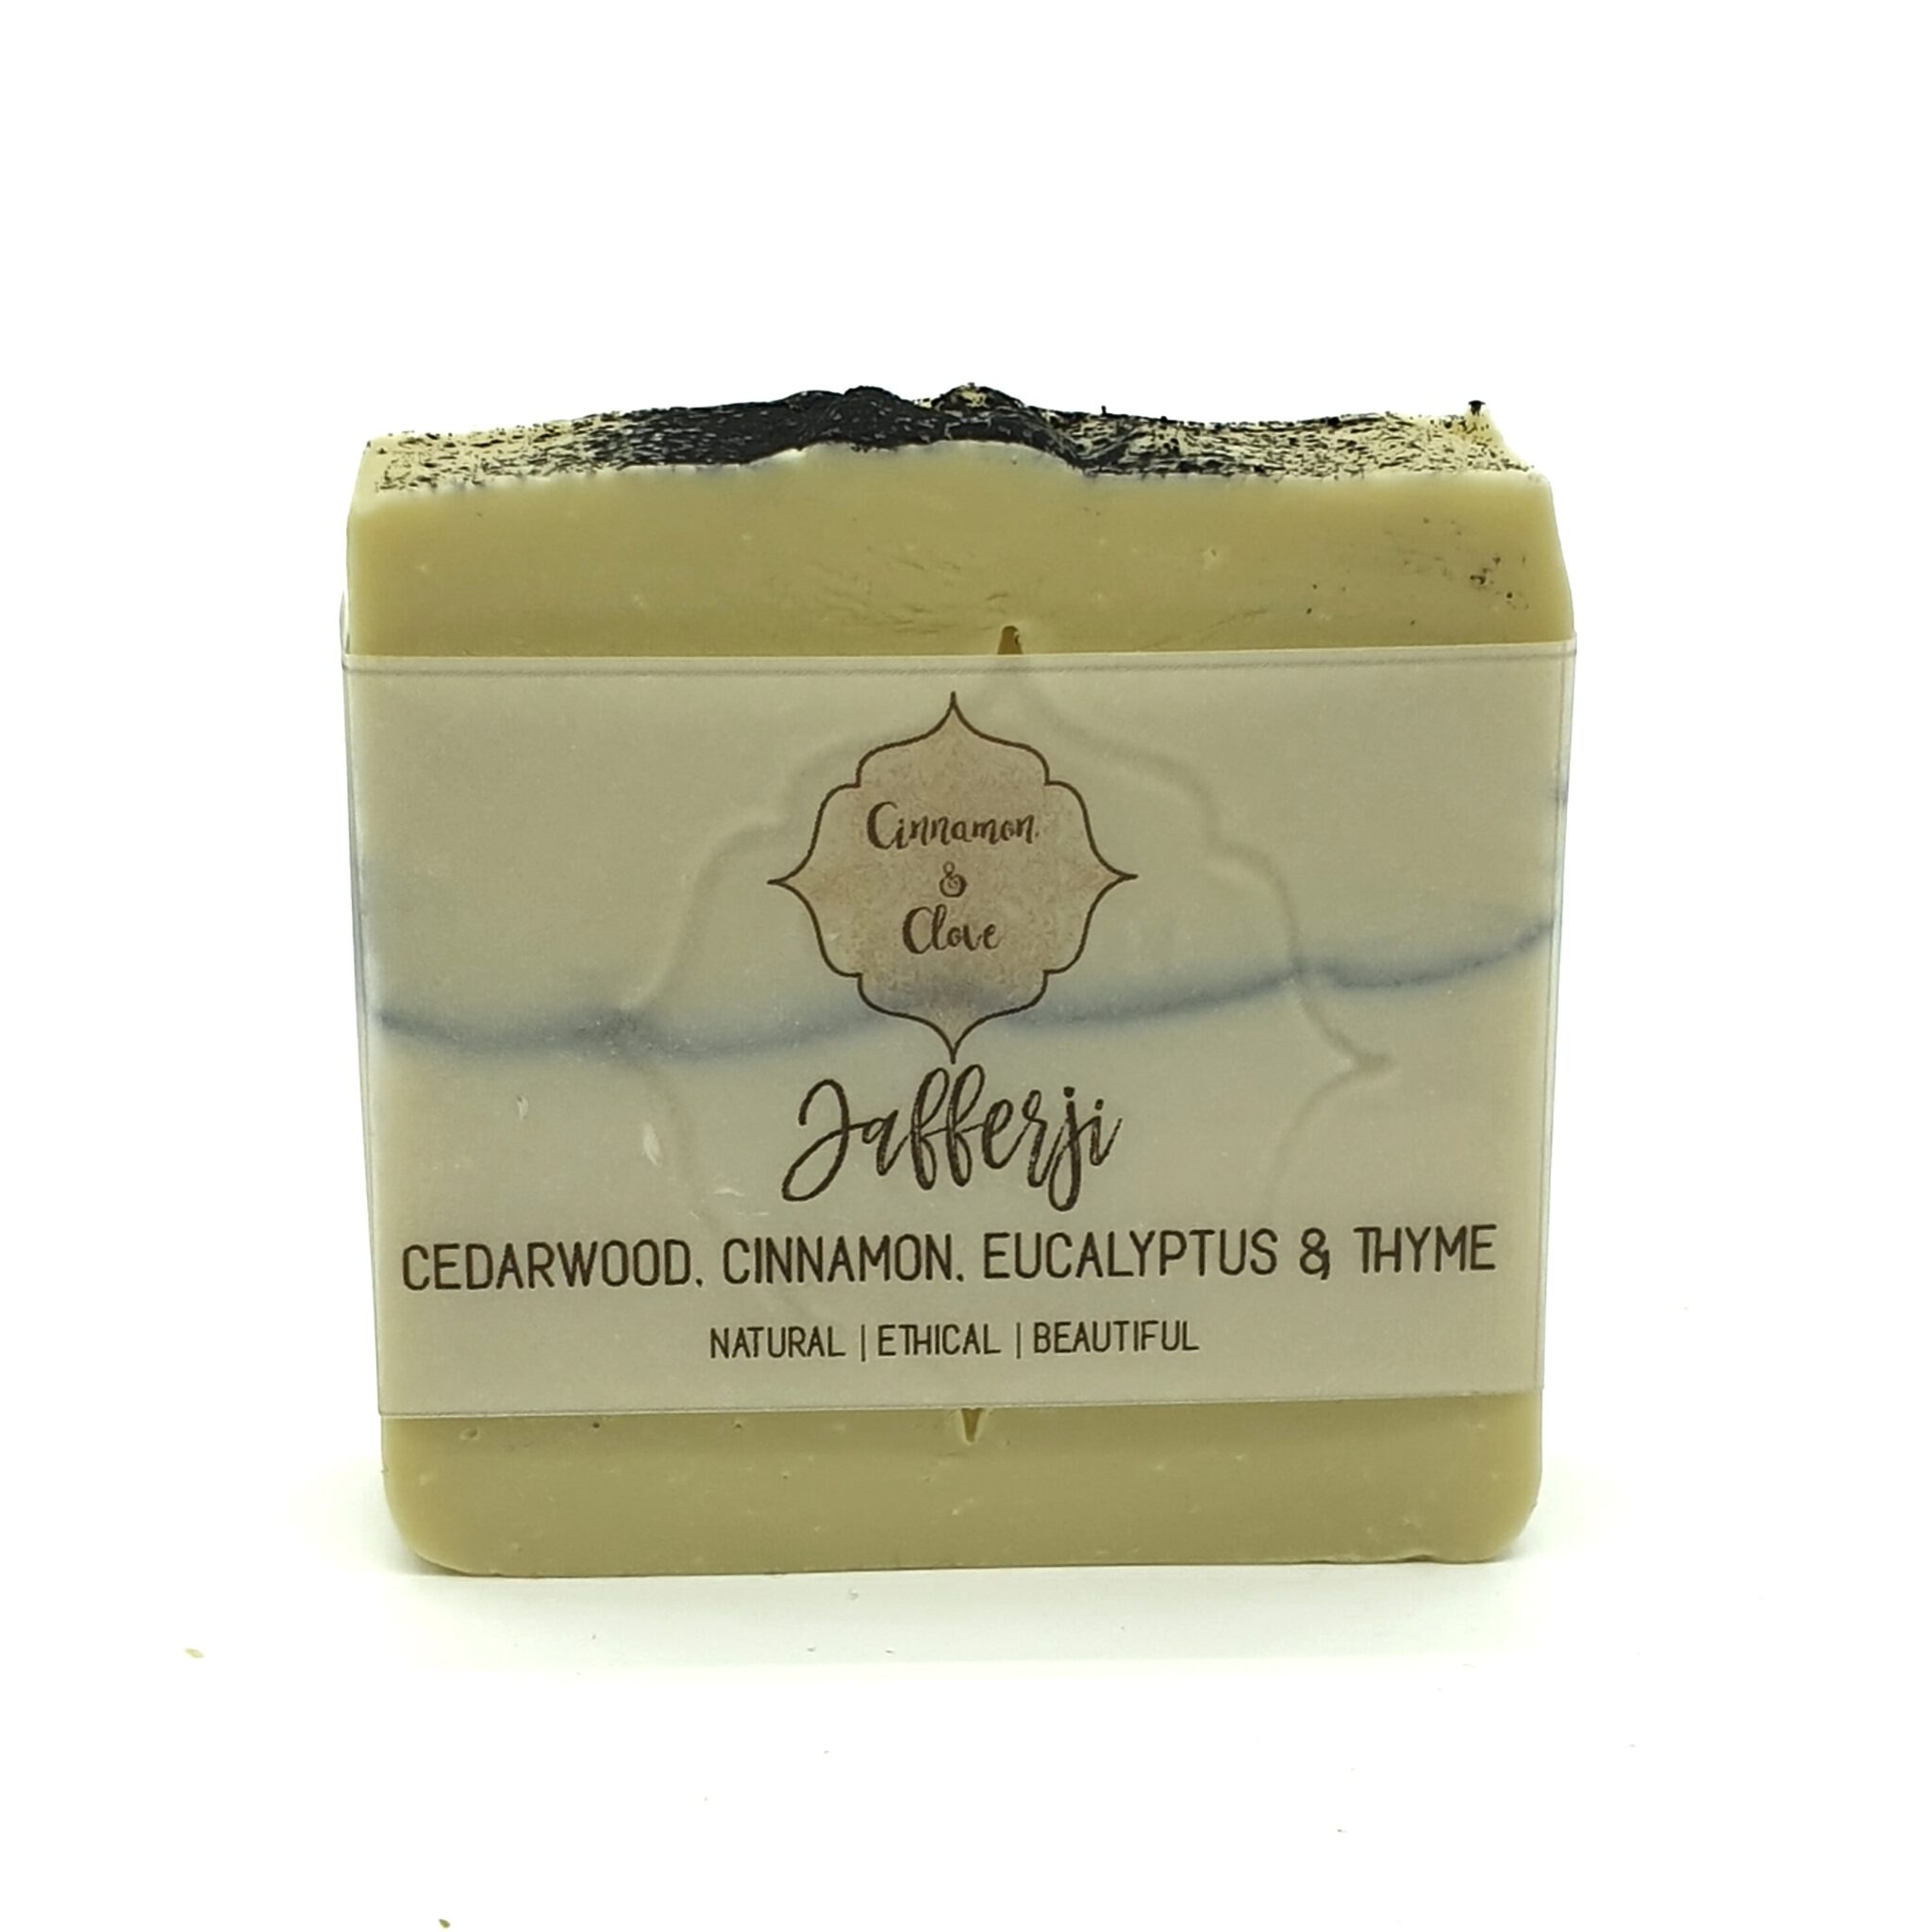 Jafferji – Handcrafted All Natural Artisan Soap By Cinnamon And Clove (Fitzroy)